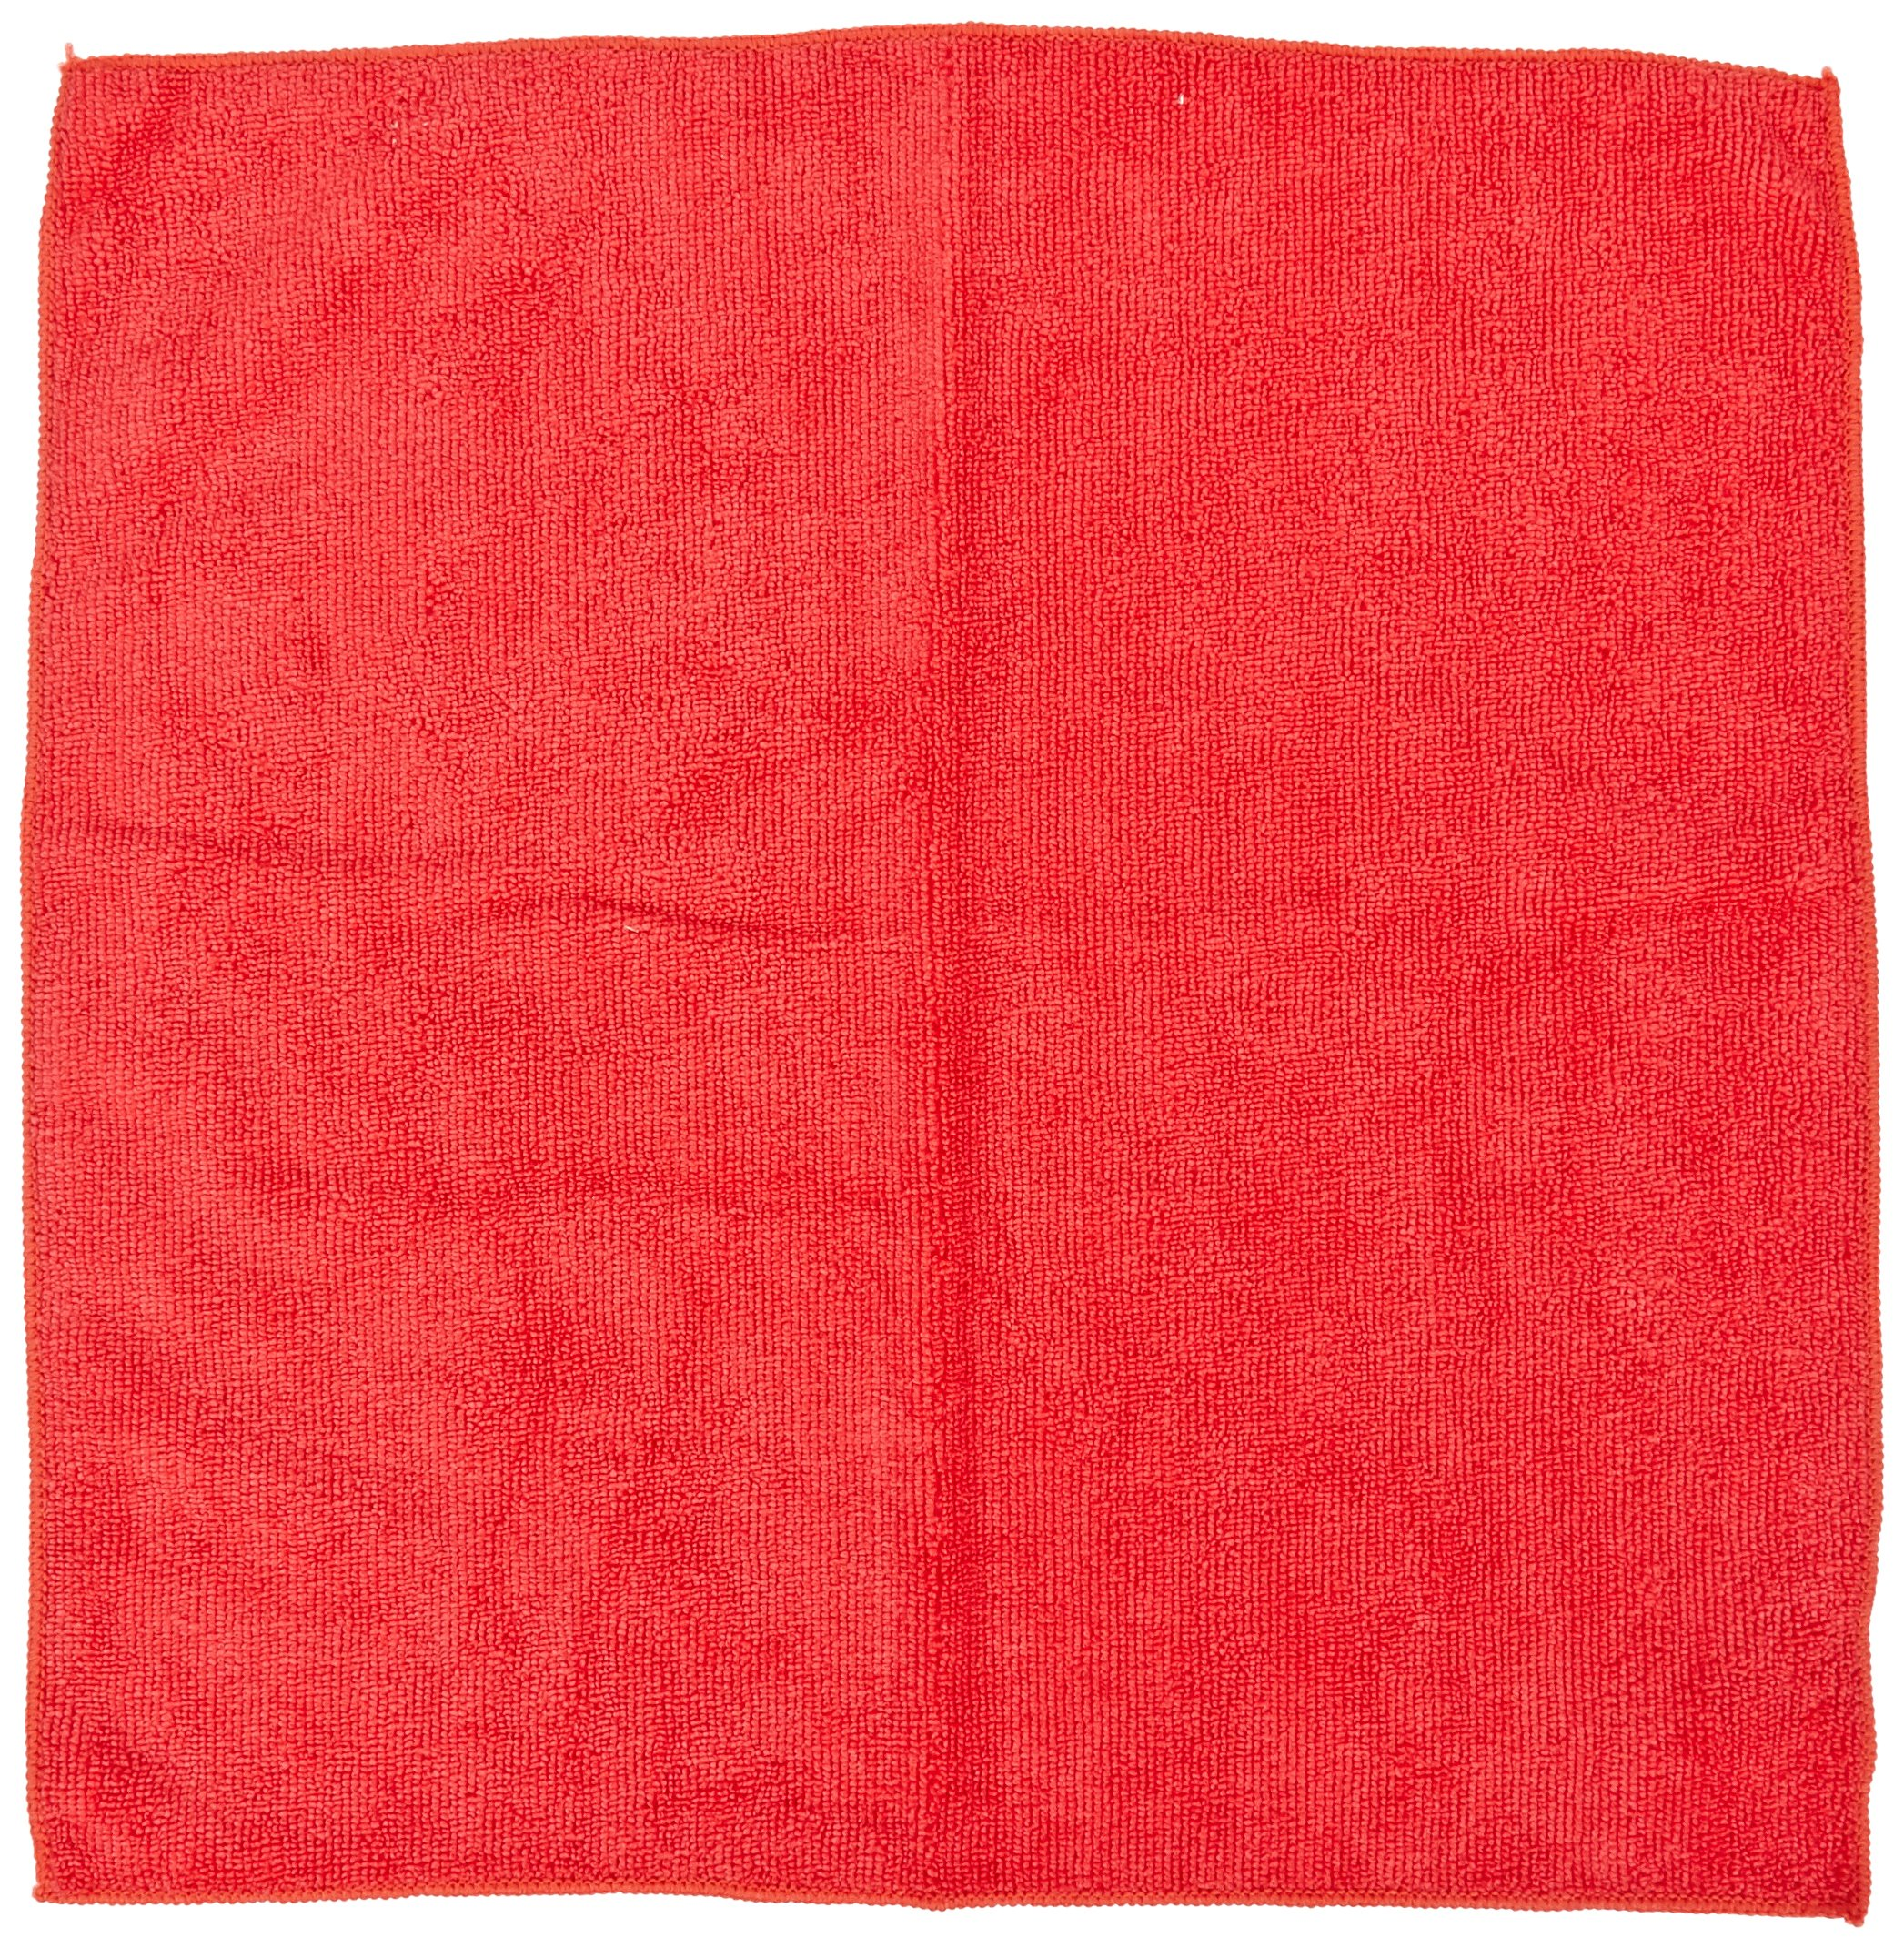 Impact LFK450 Microfiber All-Purpose Cloth, 16'' Length x 16'' Width, Red (15 Bags of 12)